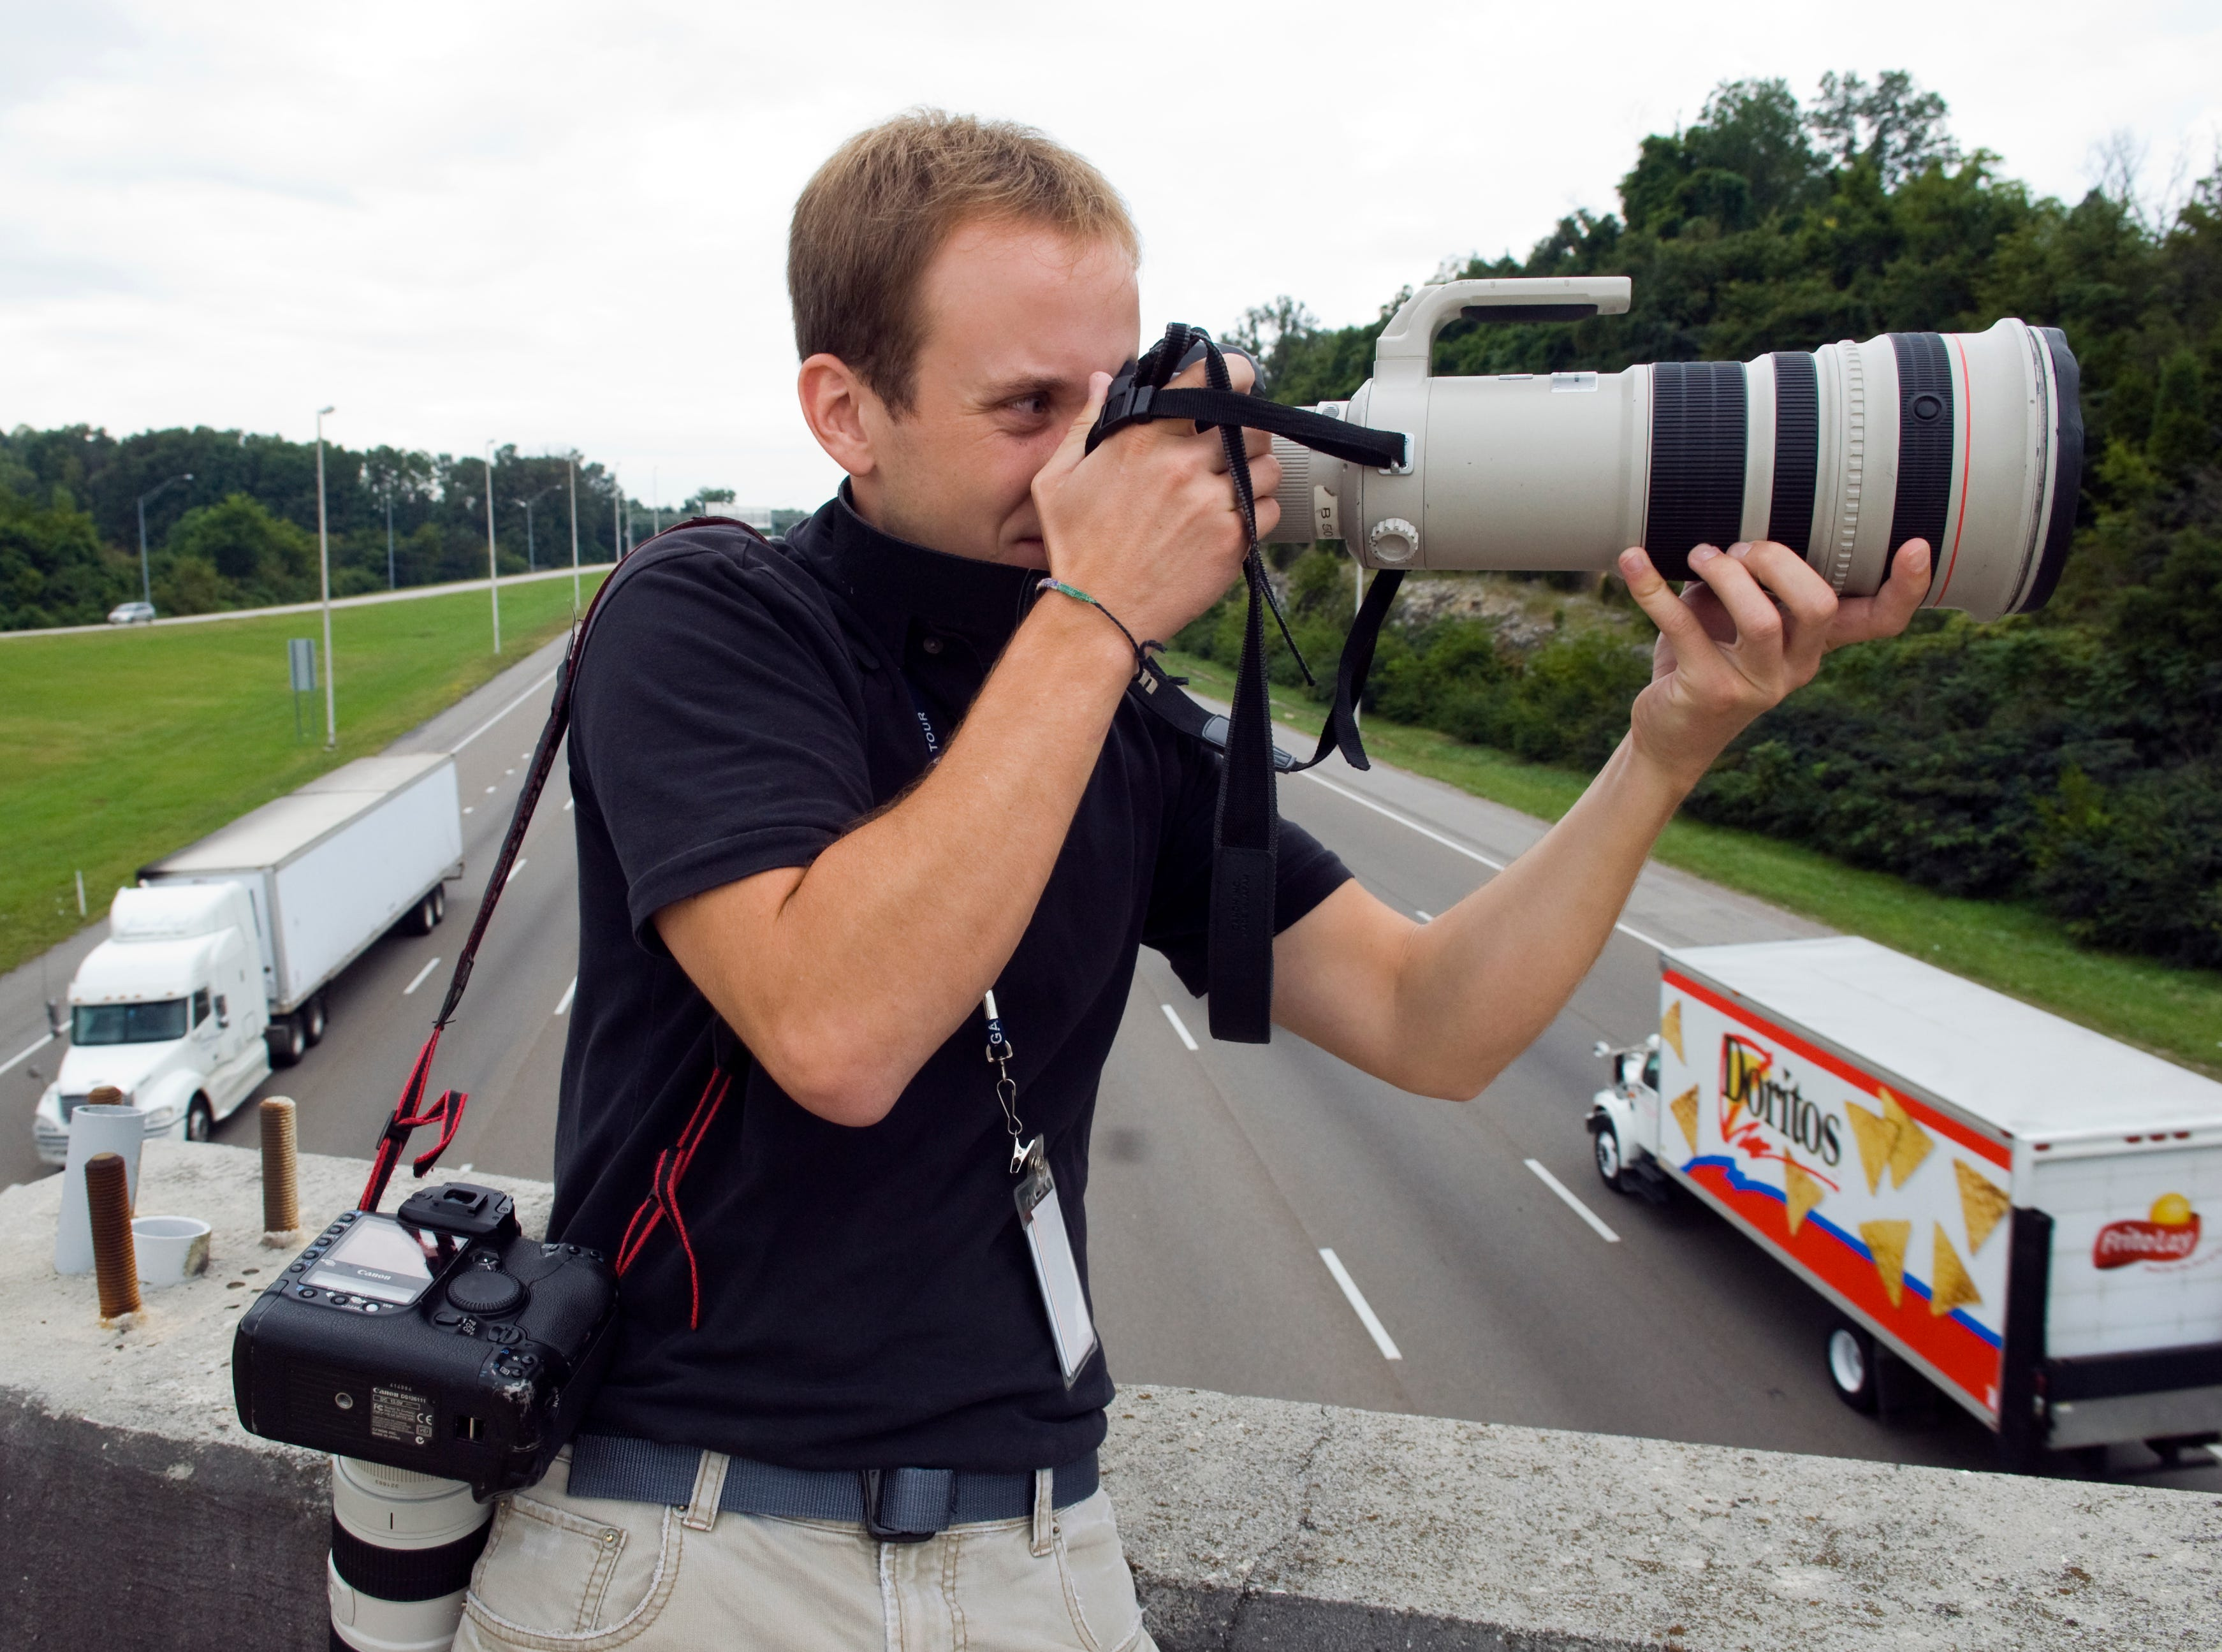 Knoxville News Sentinel staff photographer, Adam Brimer, 24, takes a picture at a spot news event with a Canon 5d Mark 2 with a 500mm lens on Tuesday, September 1, 2009.Brimer  photographs Knoxville Police Department officers as they investigate the Gap Road overpass where a man jumped off of onto interstate 640 earlier on Tuesday.